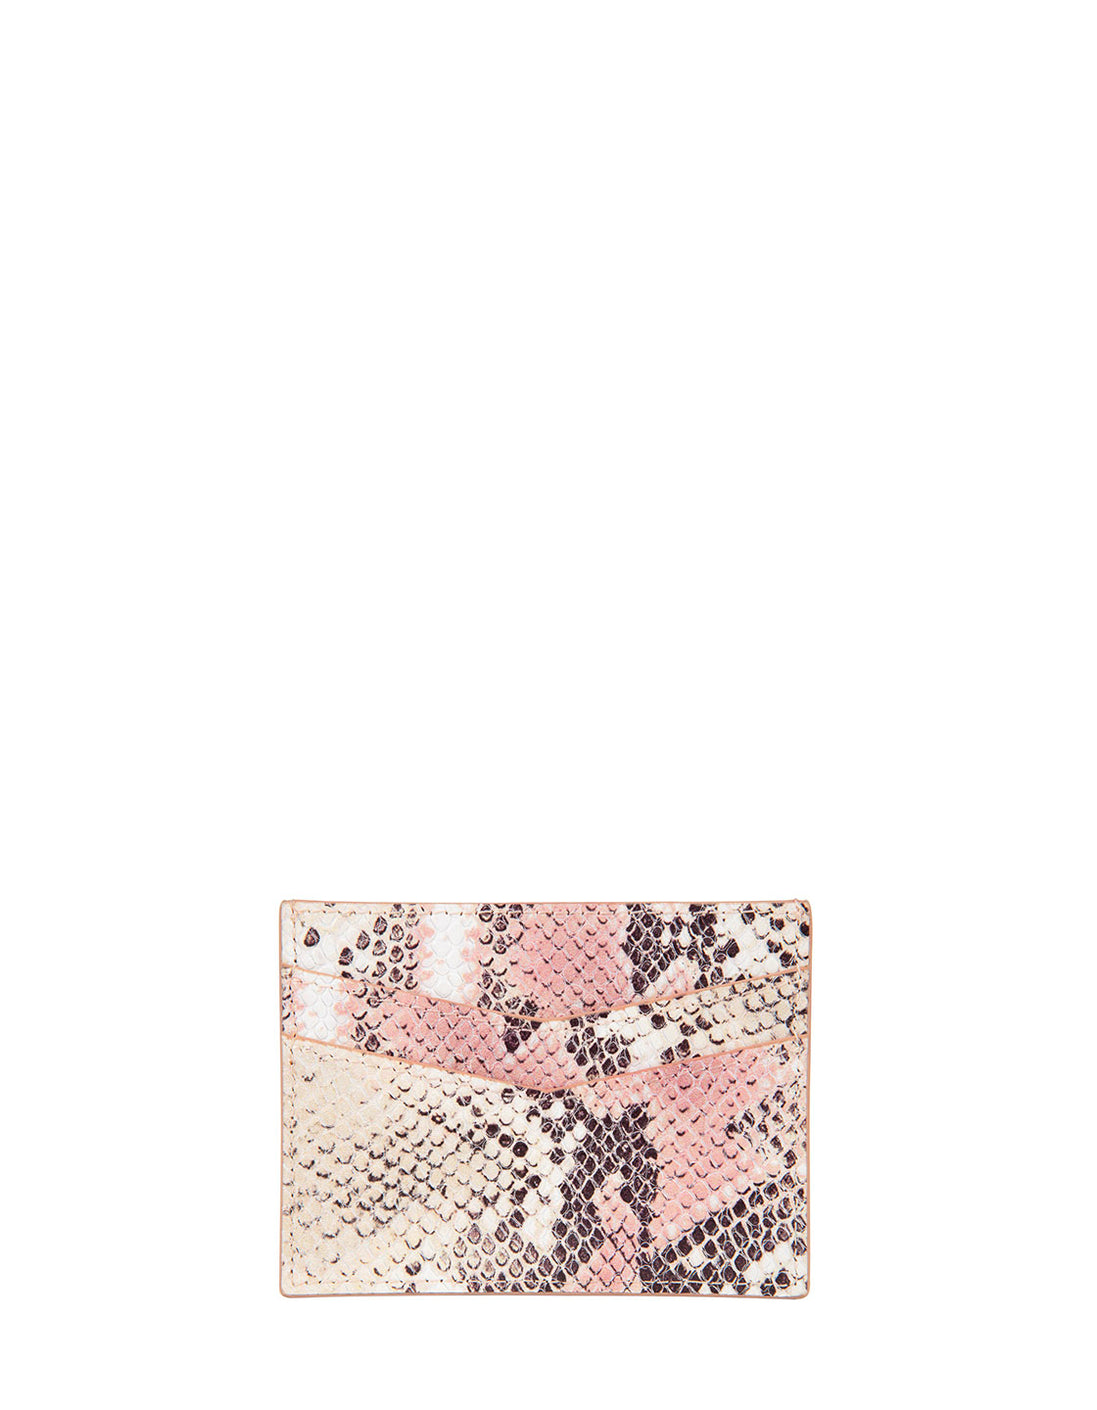 Cha Ching Card Case in Almond/Rose Multi Python